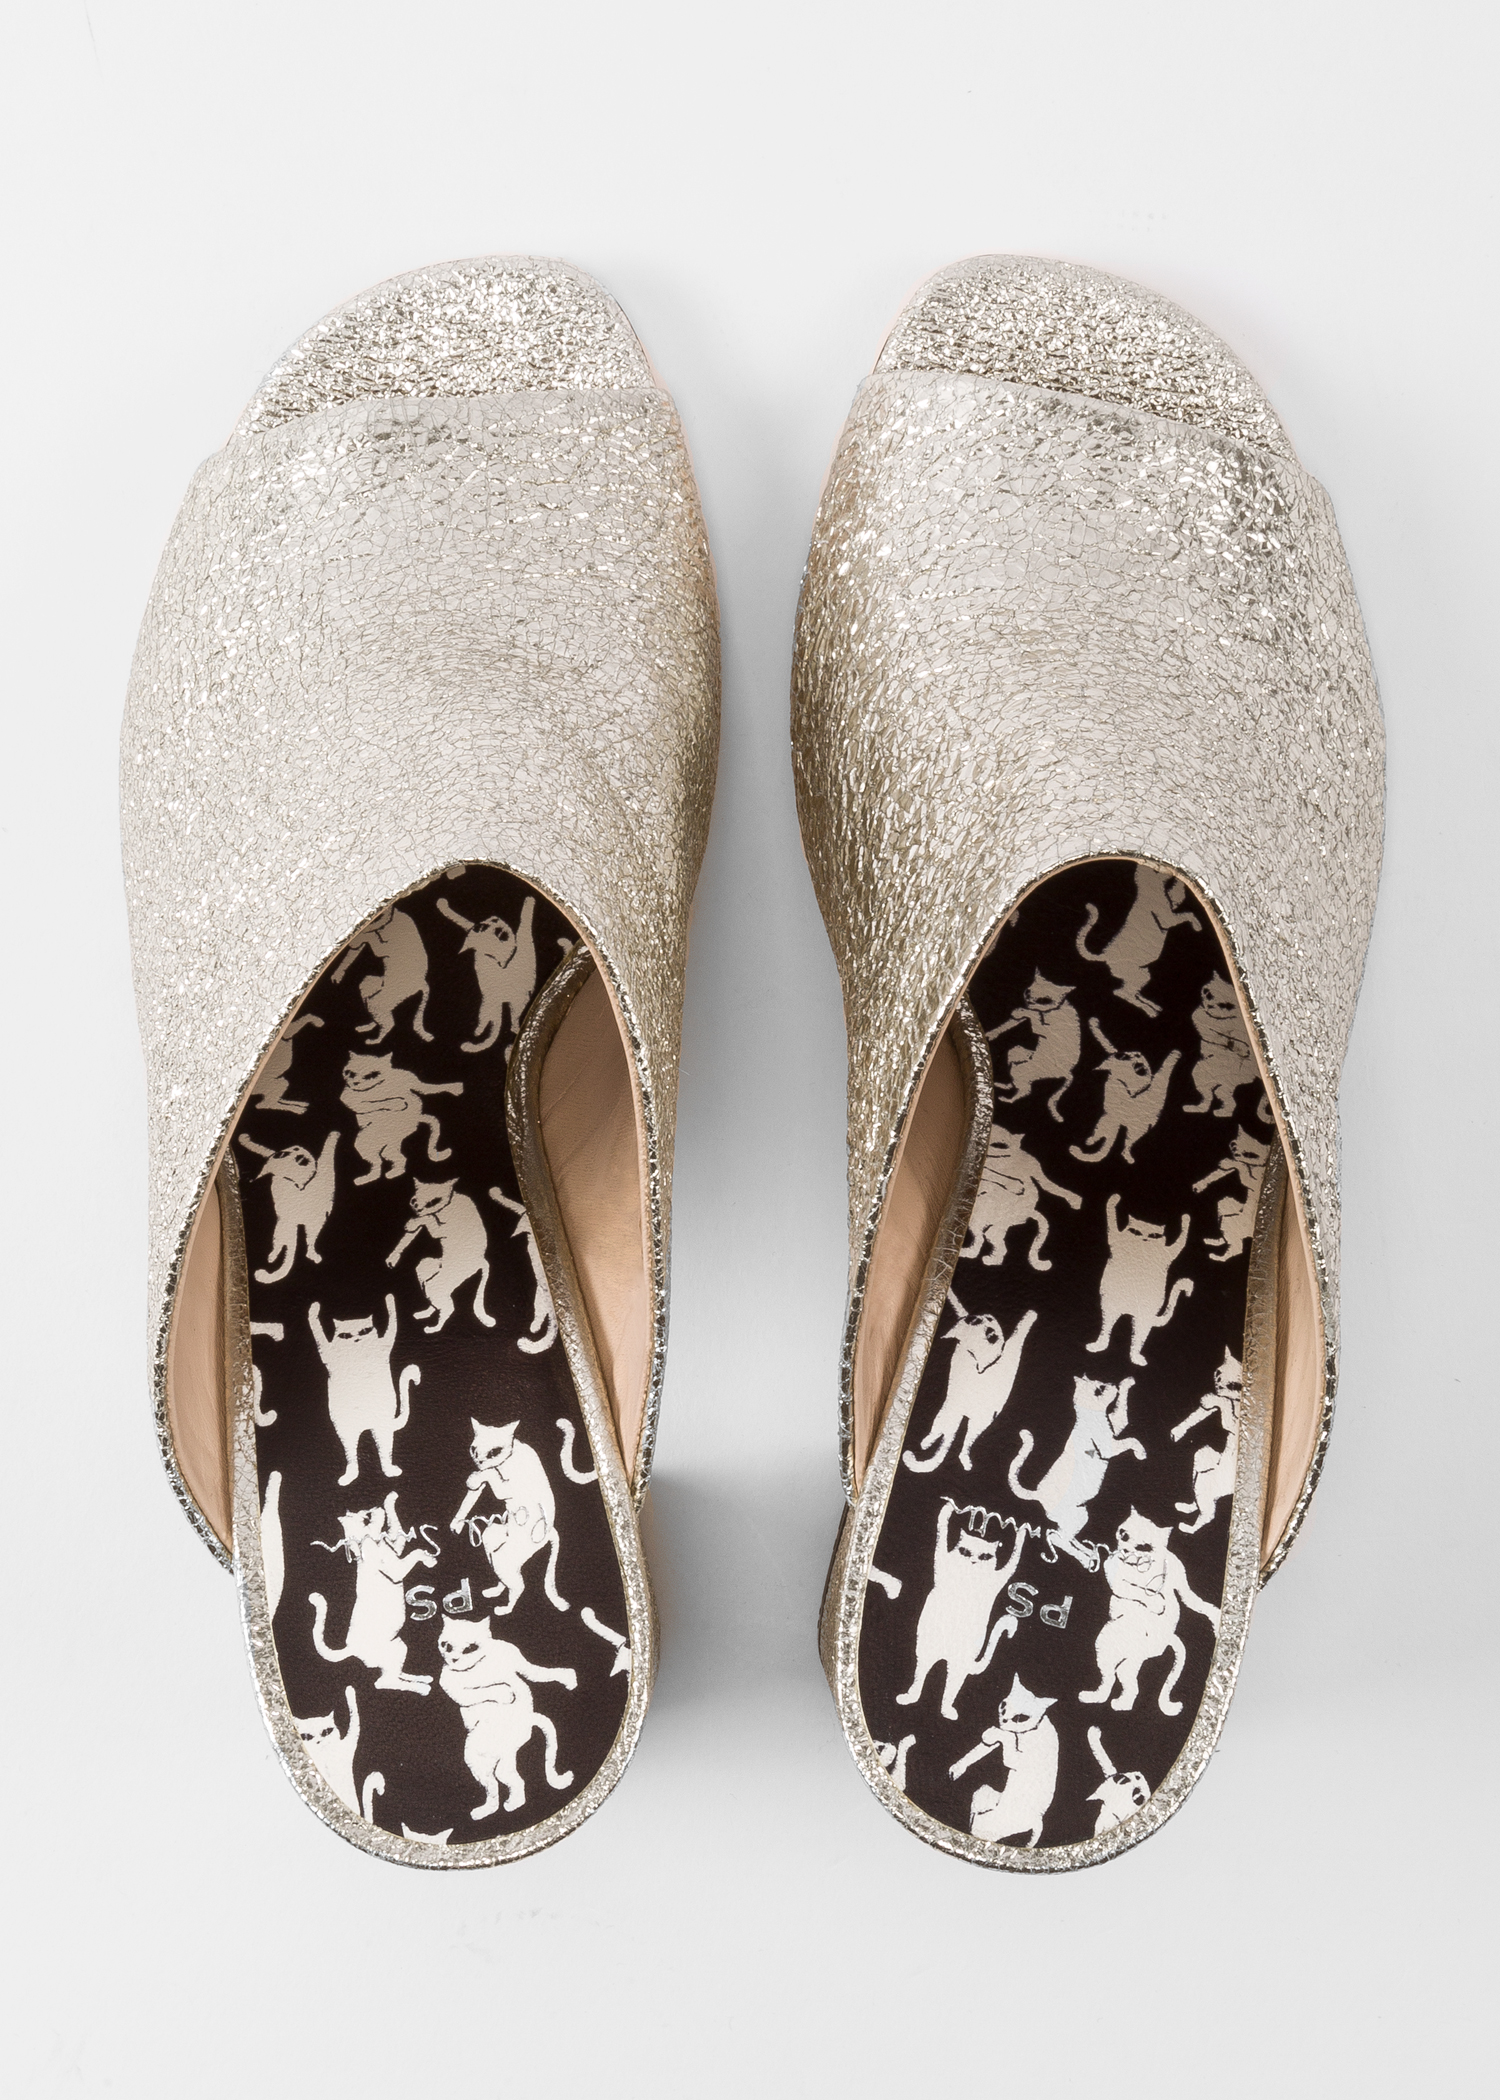 5139575decb5 Front view - Women's Silver Glitter Heeled Mules Paul Smith